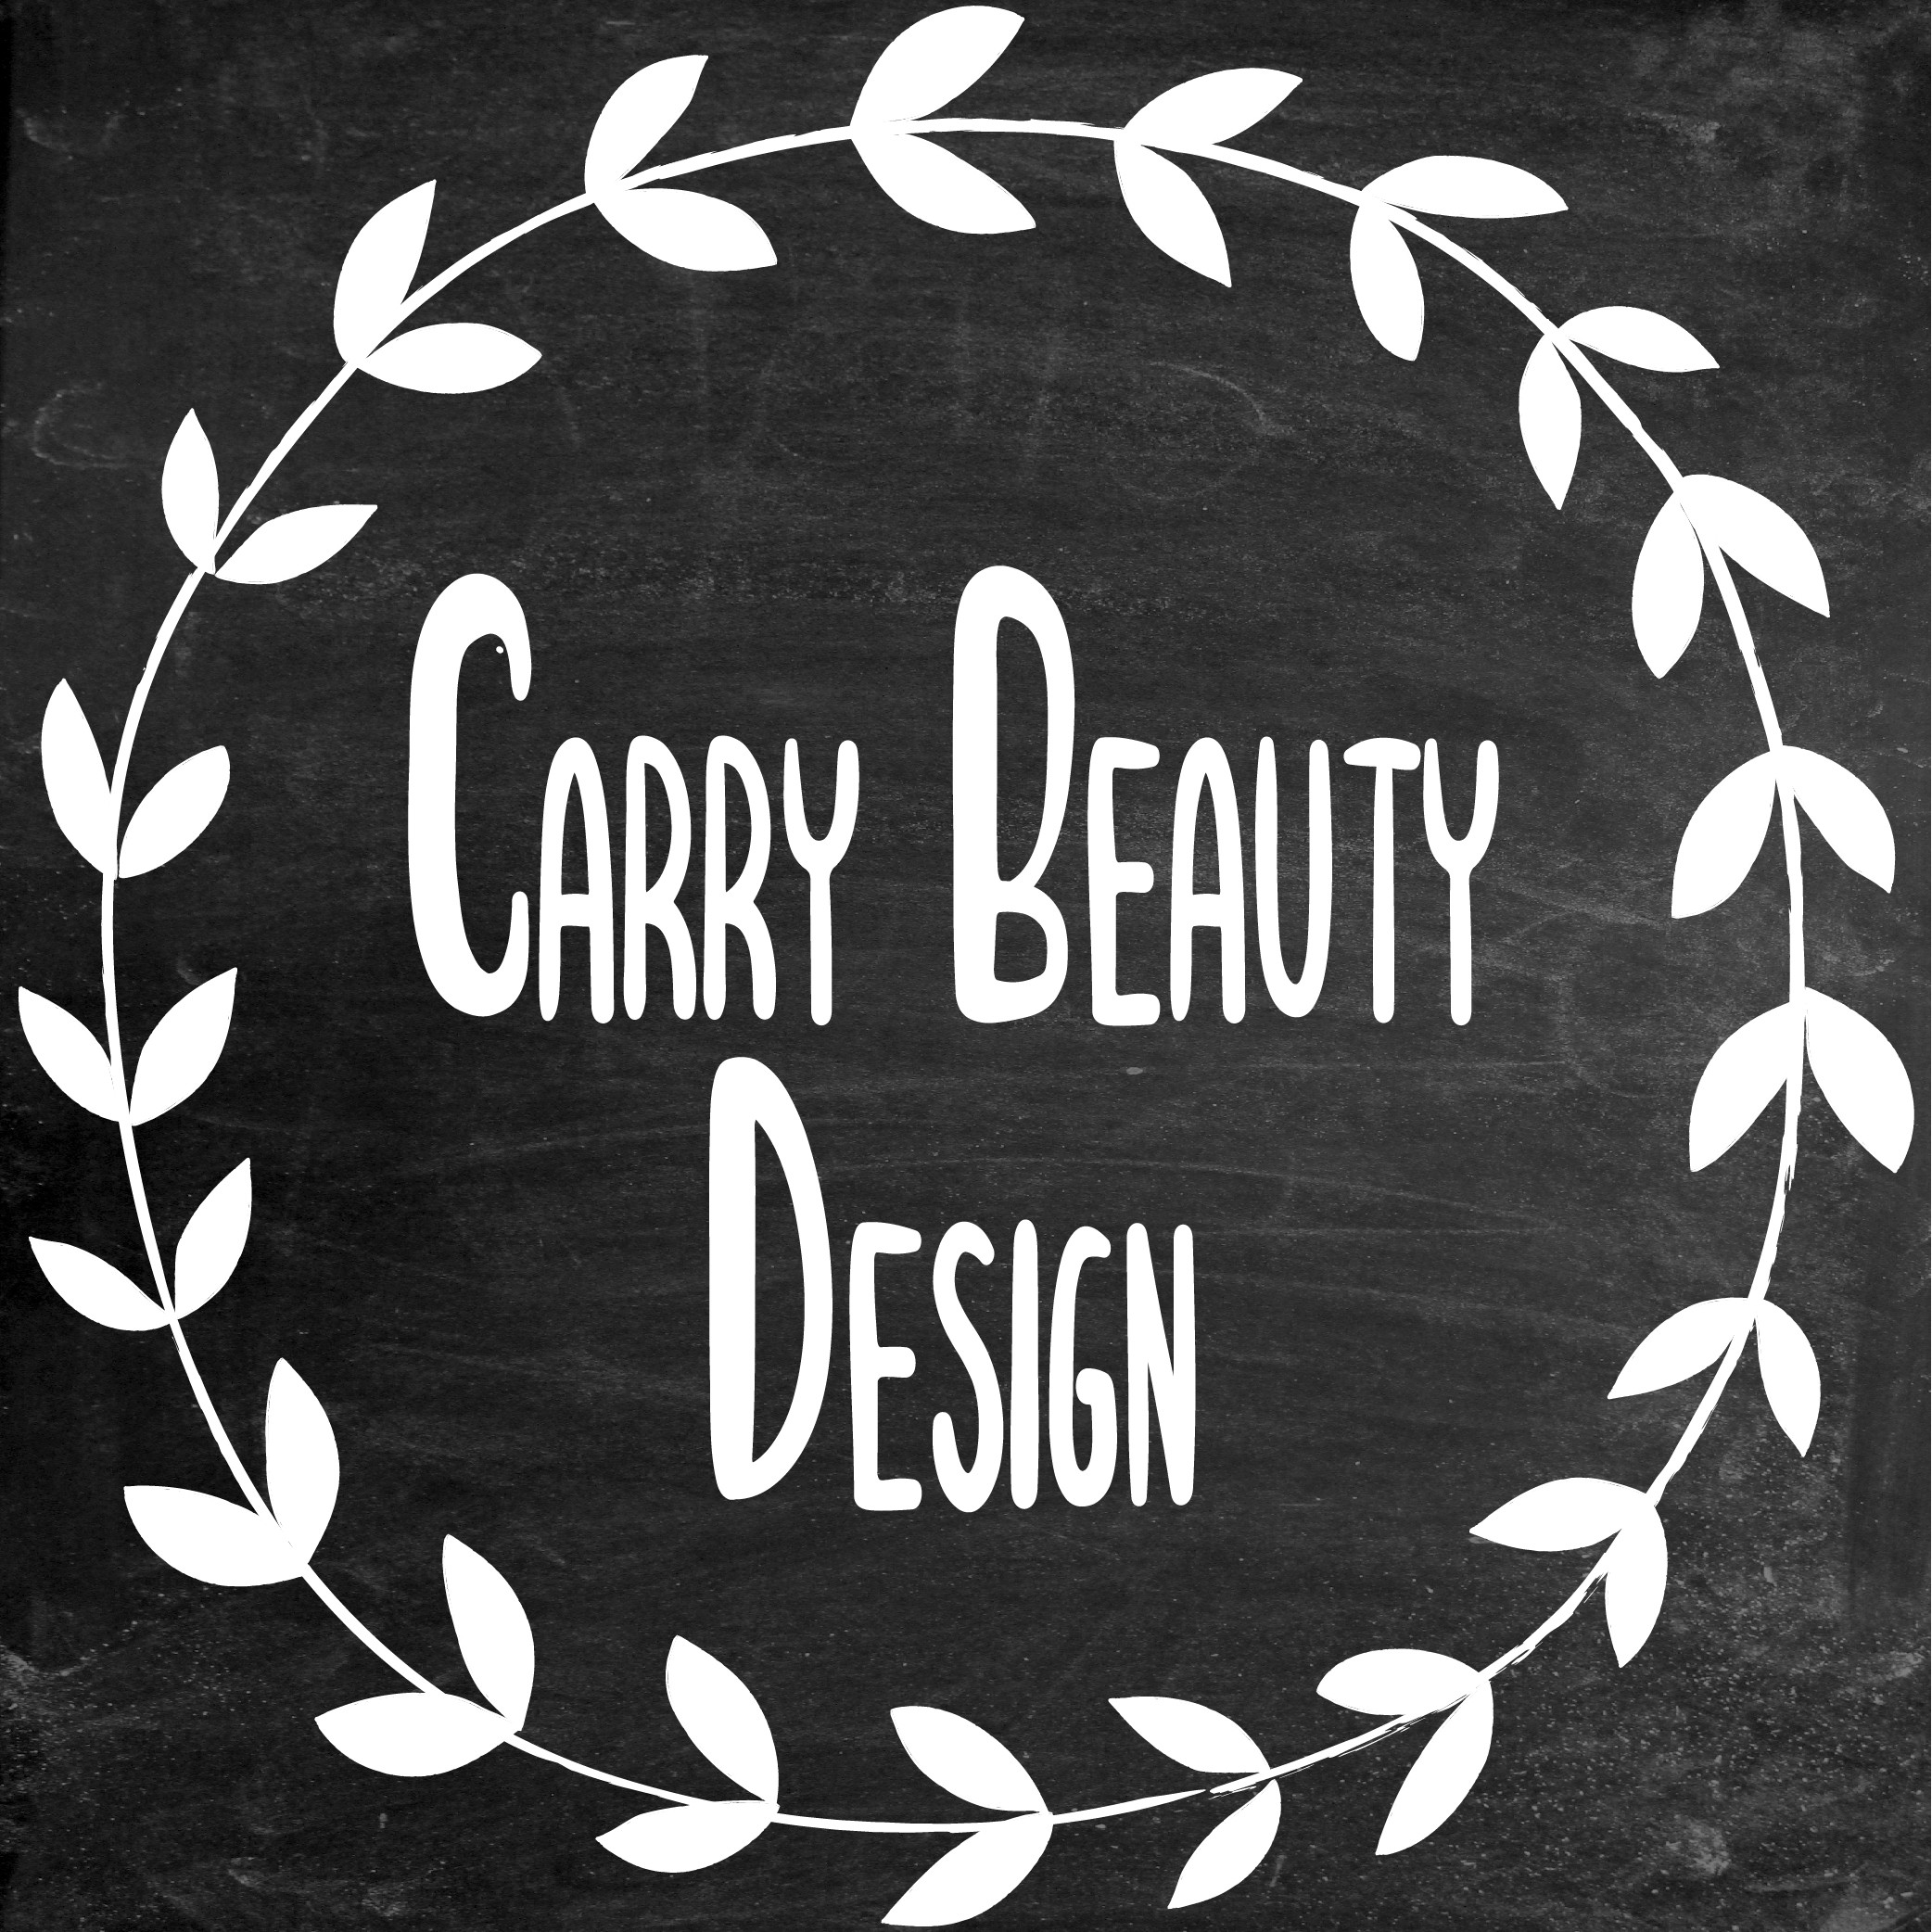 CarryBeautySVG's profile picture